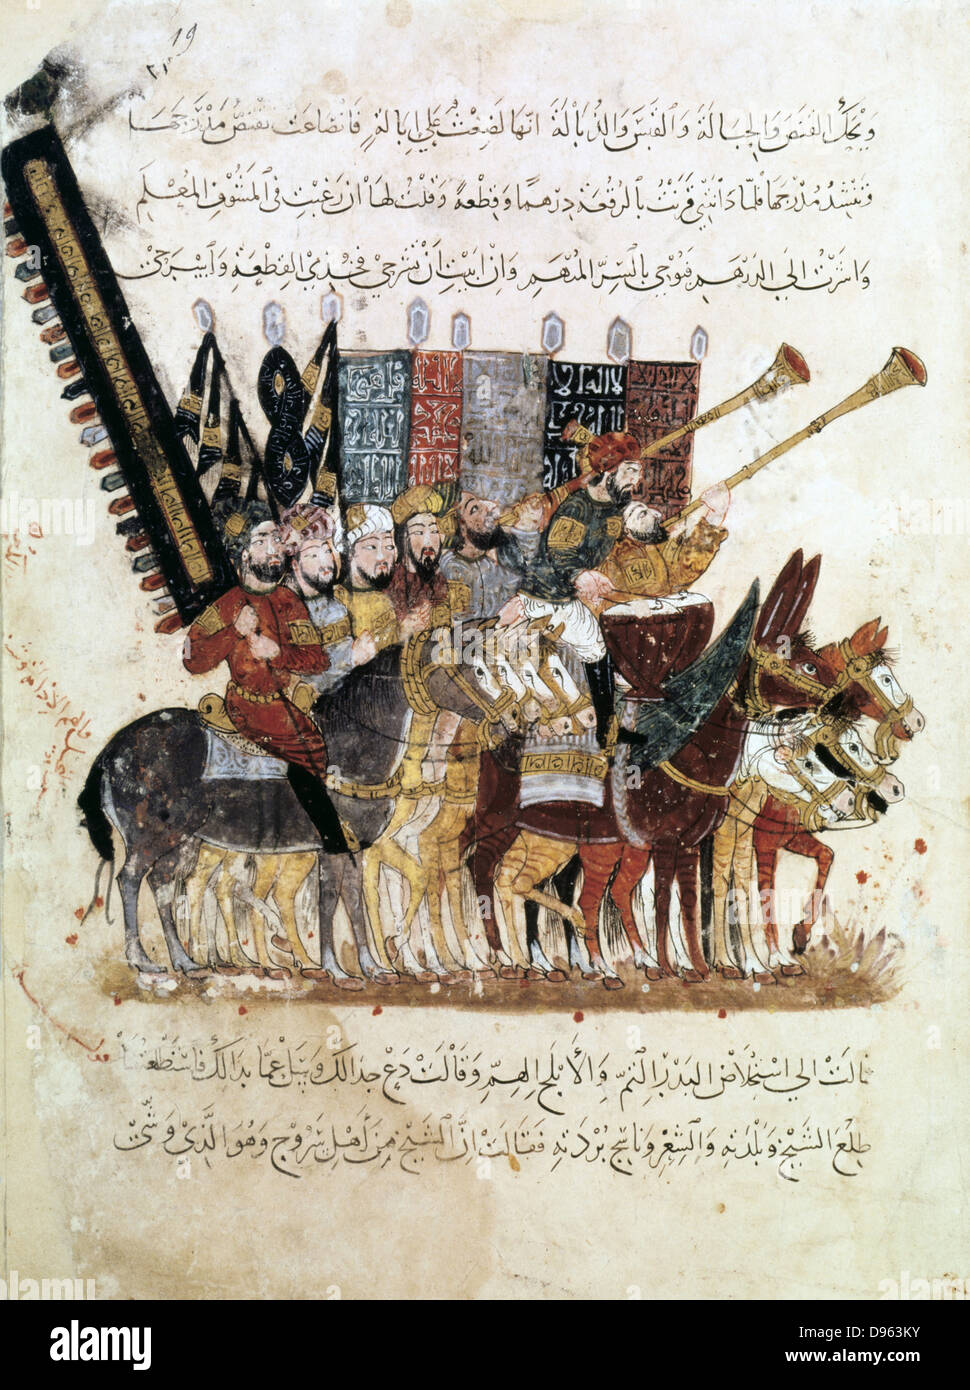 Troop of horsemen with banners, trumpets and drums, at religious ceremony. 1237 manuscript of Maqamat ('Assemblies') - Stock Image